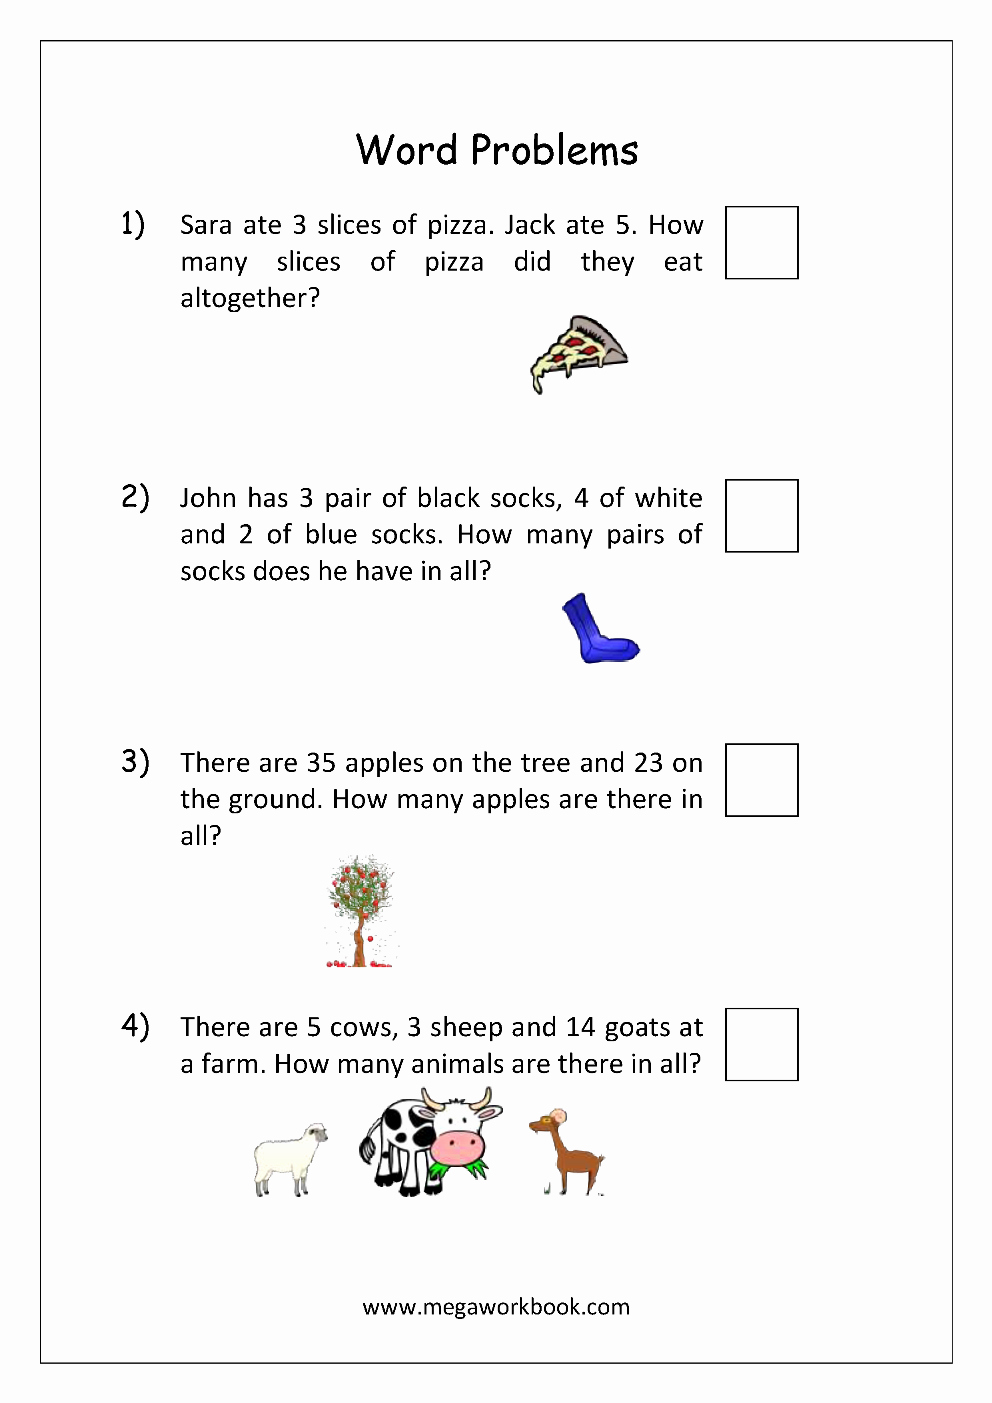 Algebra 1 Word Problems Worksheet Inspirational Addition and Subtraction Word Problems Worksheets for